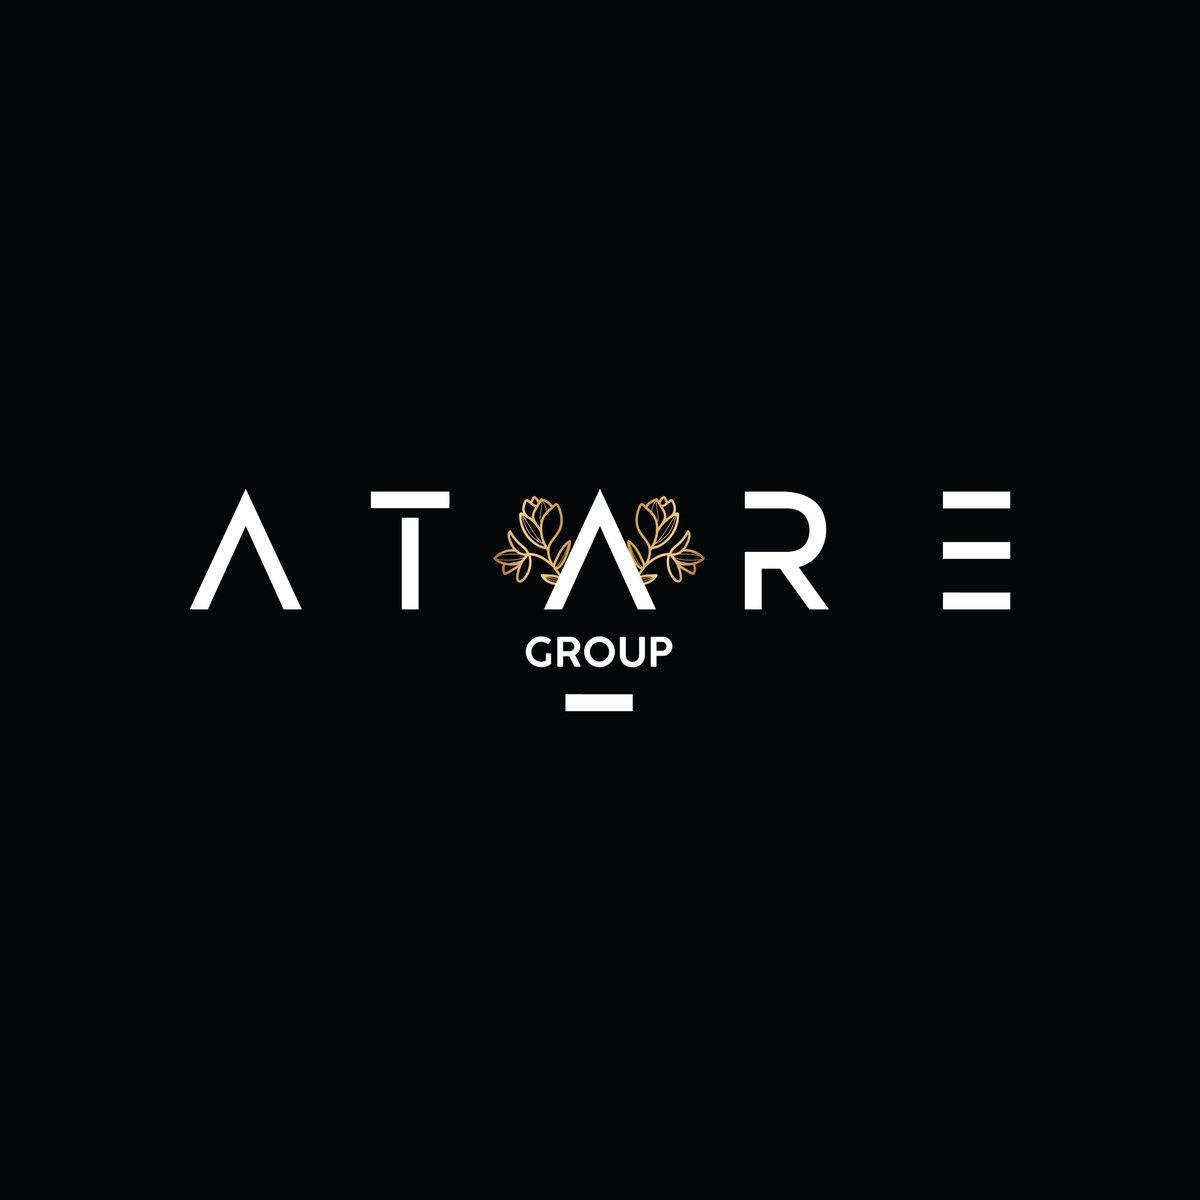 So I launched my very own boutique agency during the craziness that is this pandemic, Atare Group. We offer a variety of services: PR, Talent and Influencer Management, Rate Card and Media Kits, Influencer Marketing Solutions and Project management. Cont... https://t.co/OIvYnTQR9O